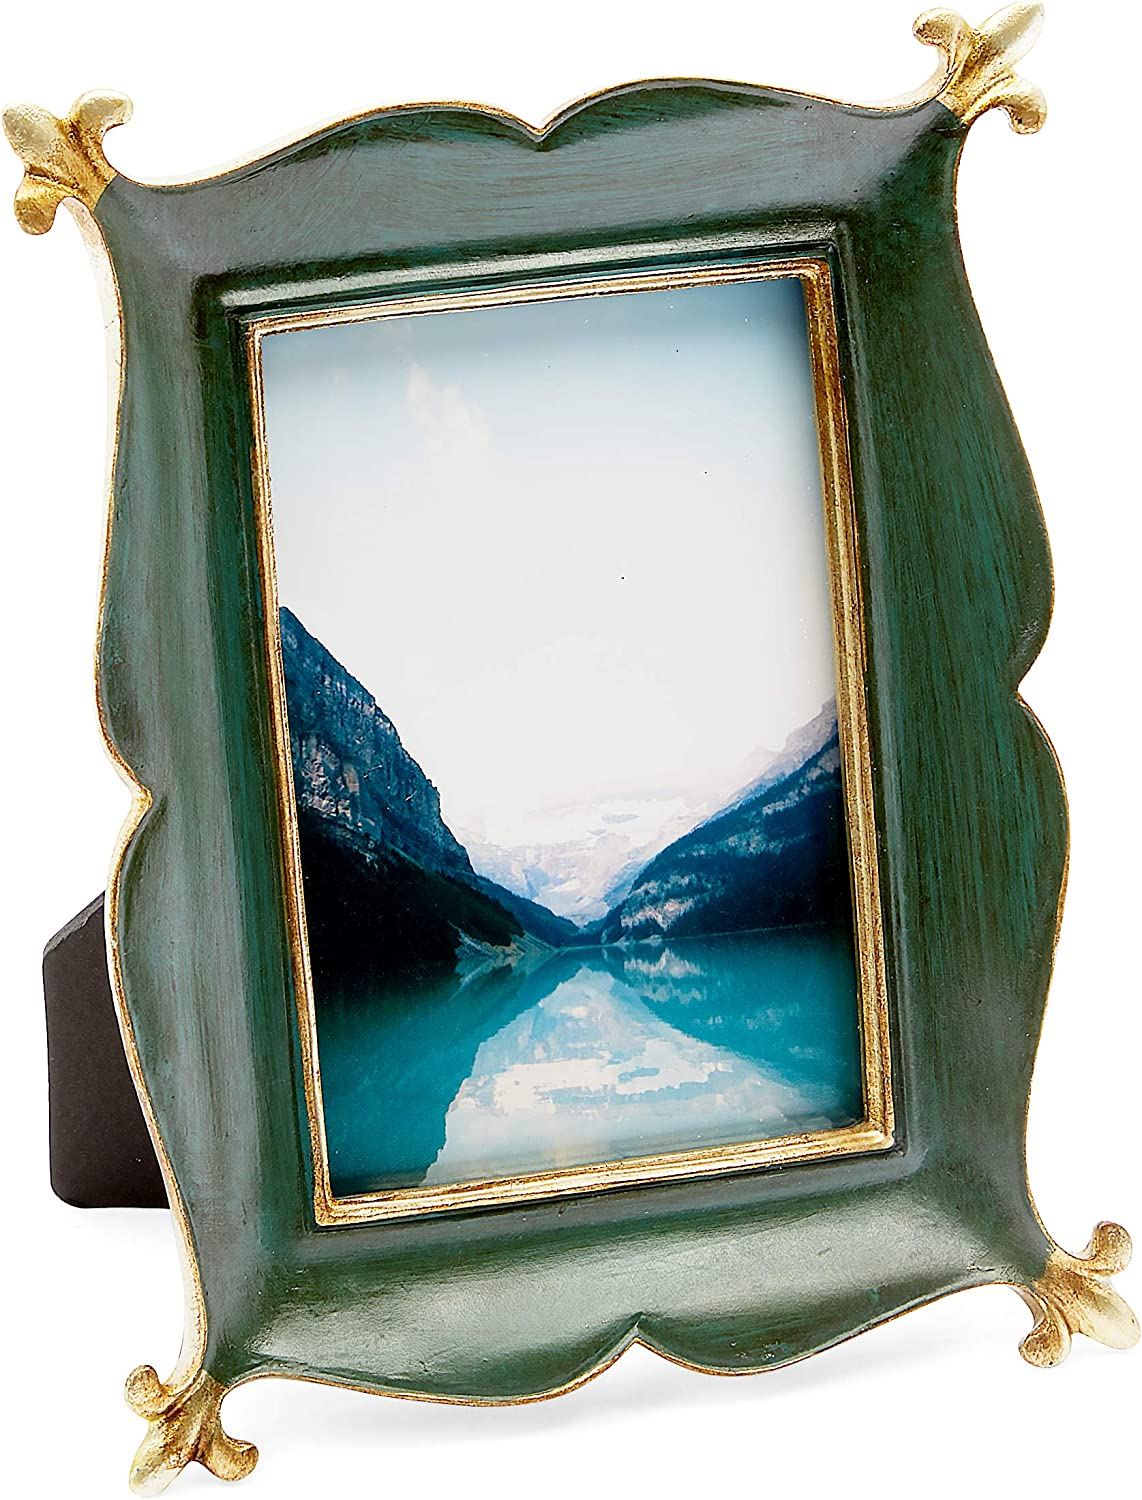 Okuna Outpost Vintage Picture Frames for 4 x 6 Inch Photos, Rustic Green, Gold (6 x 8 in)